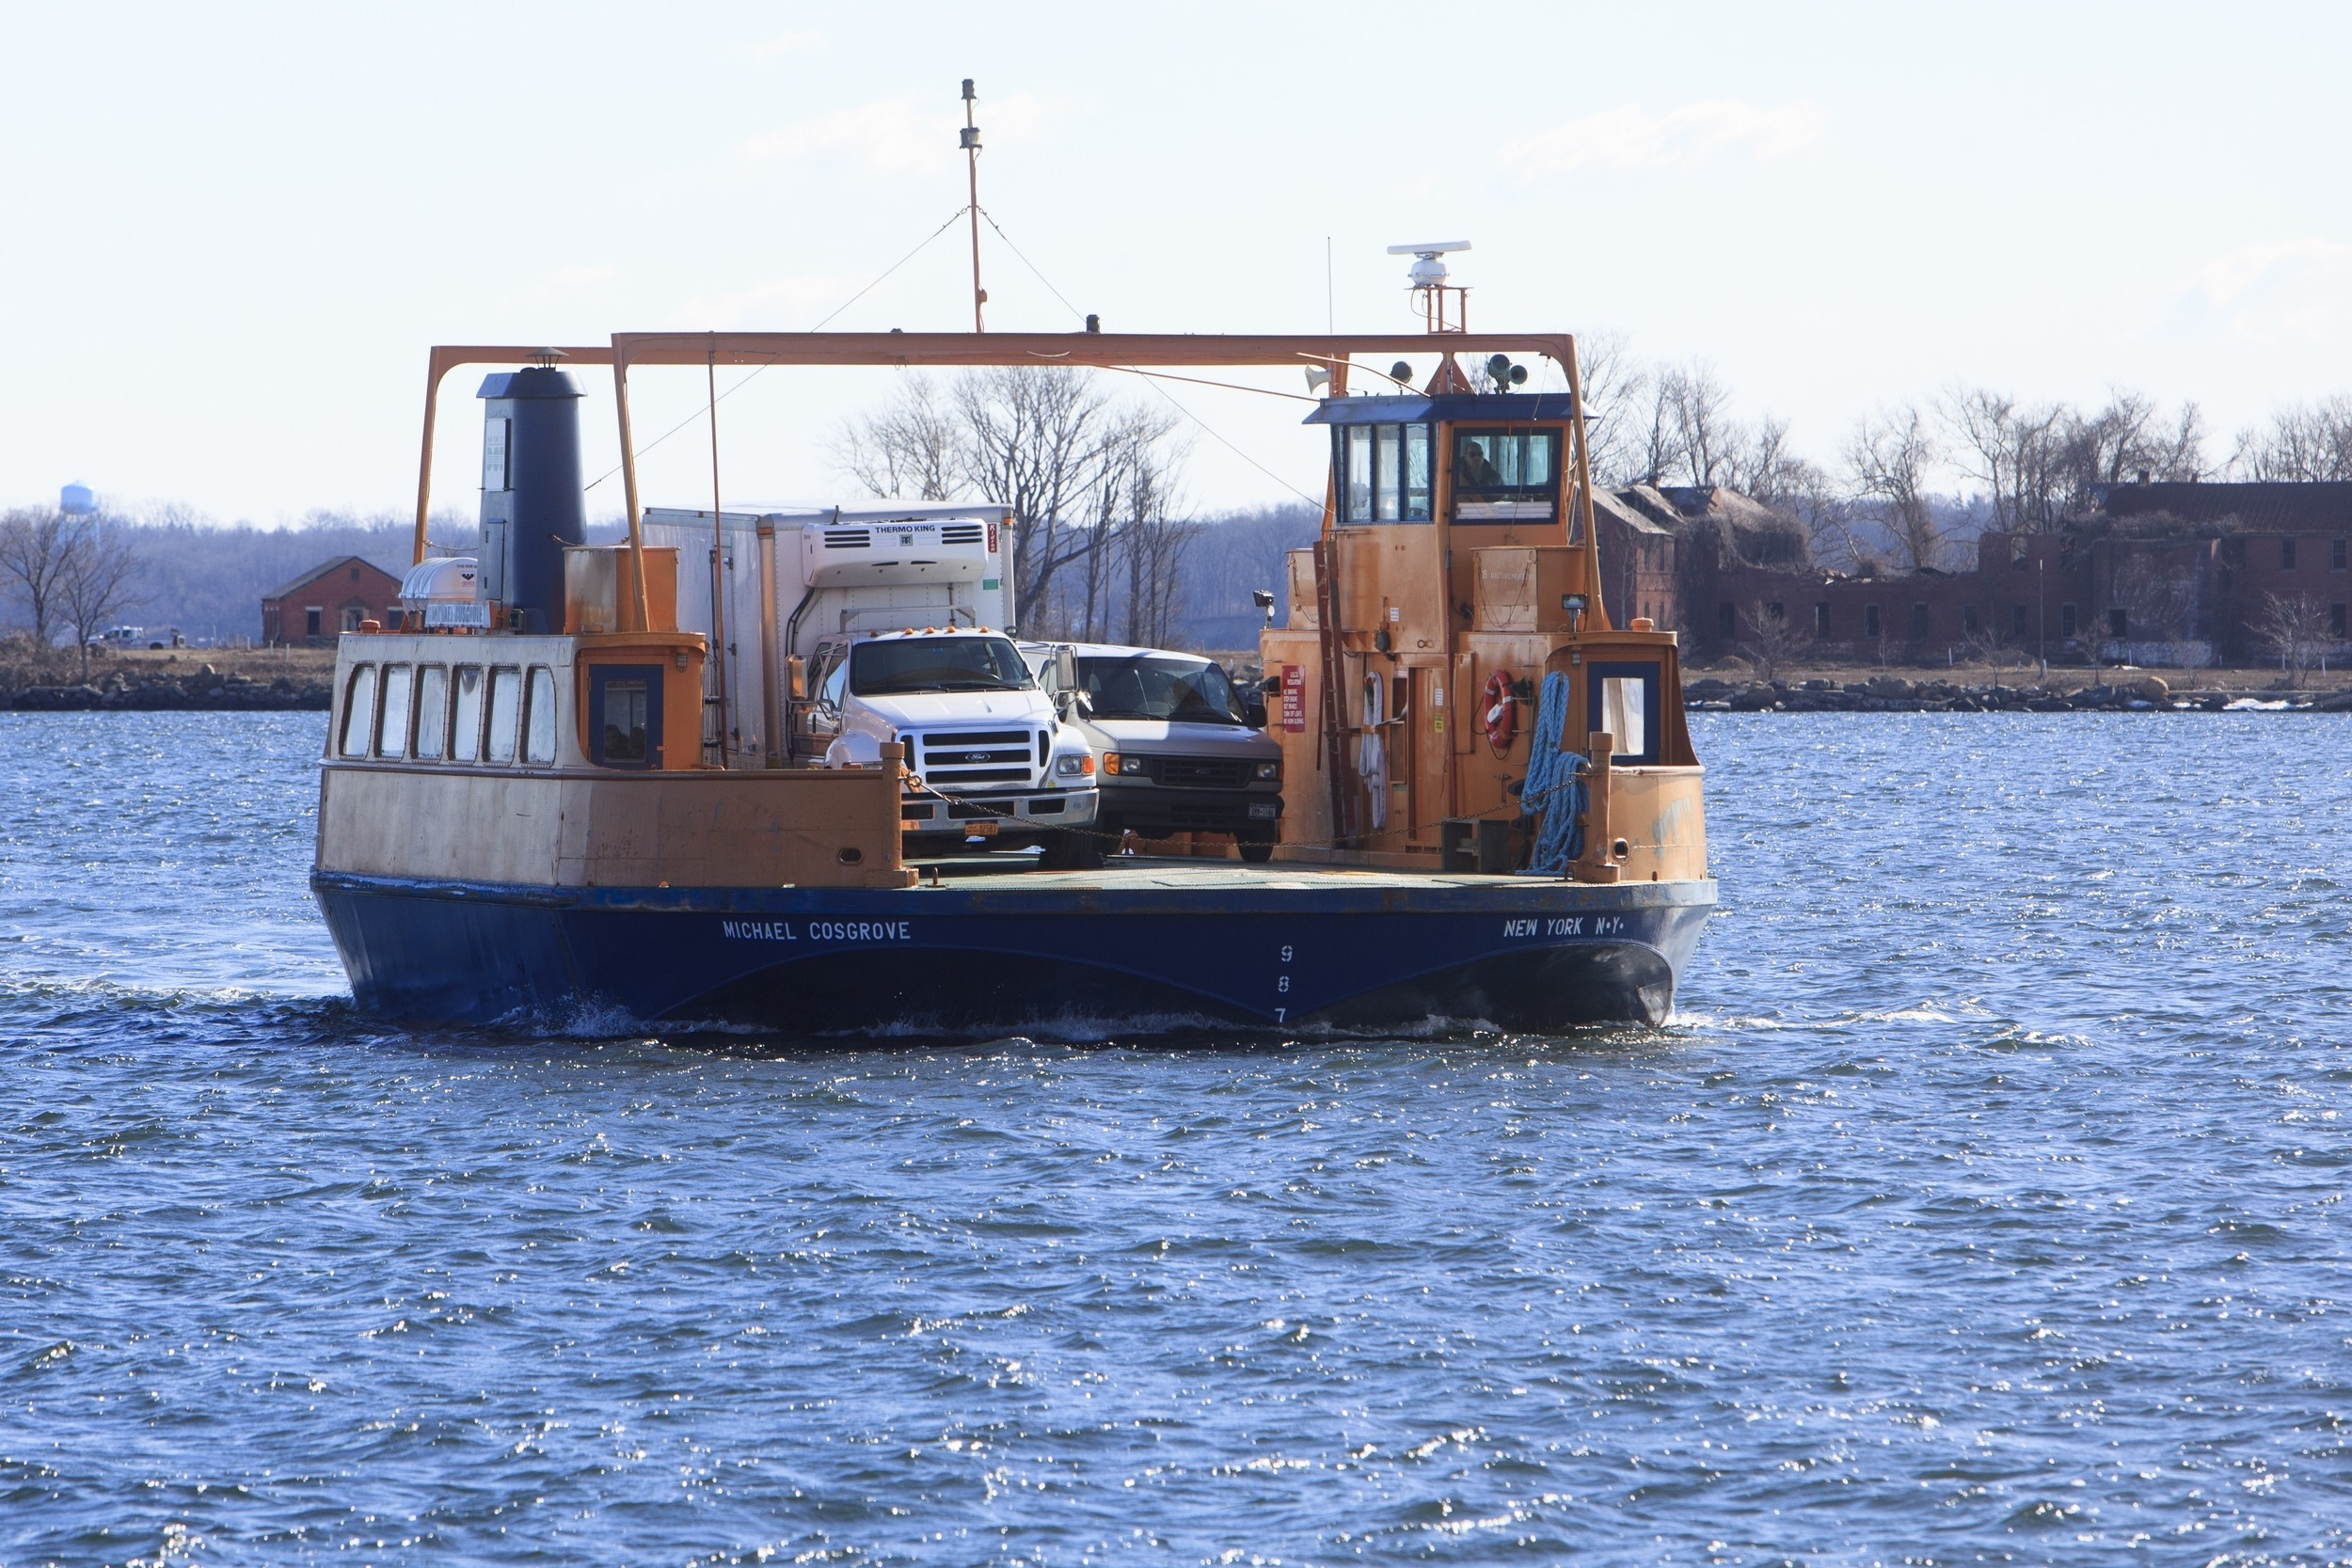 A medical examiner's truck returning from Hart Island after having brought bodies for burial.